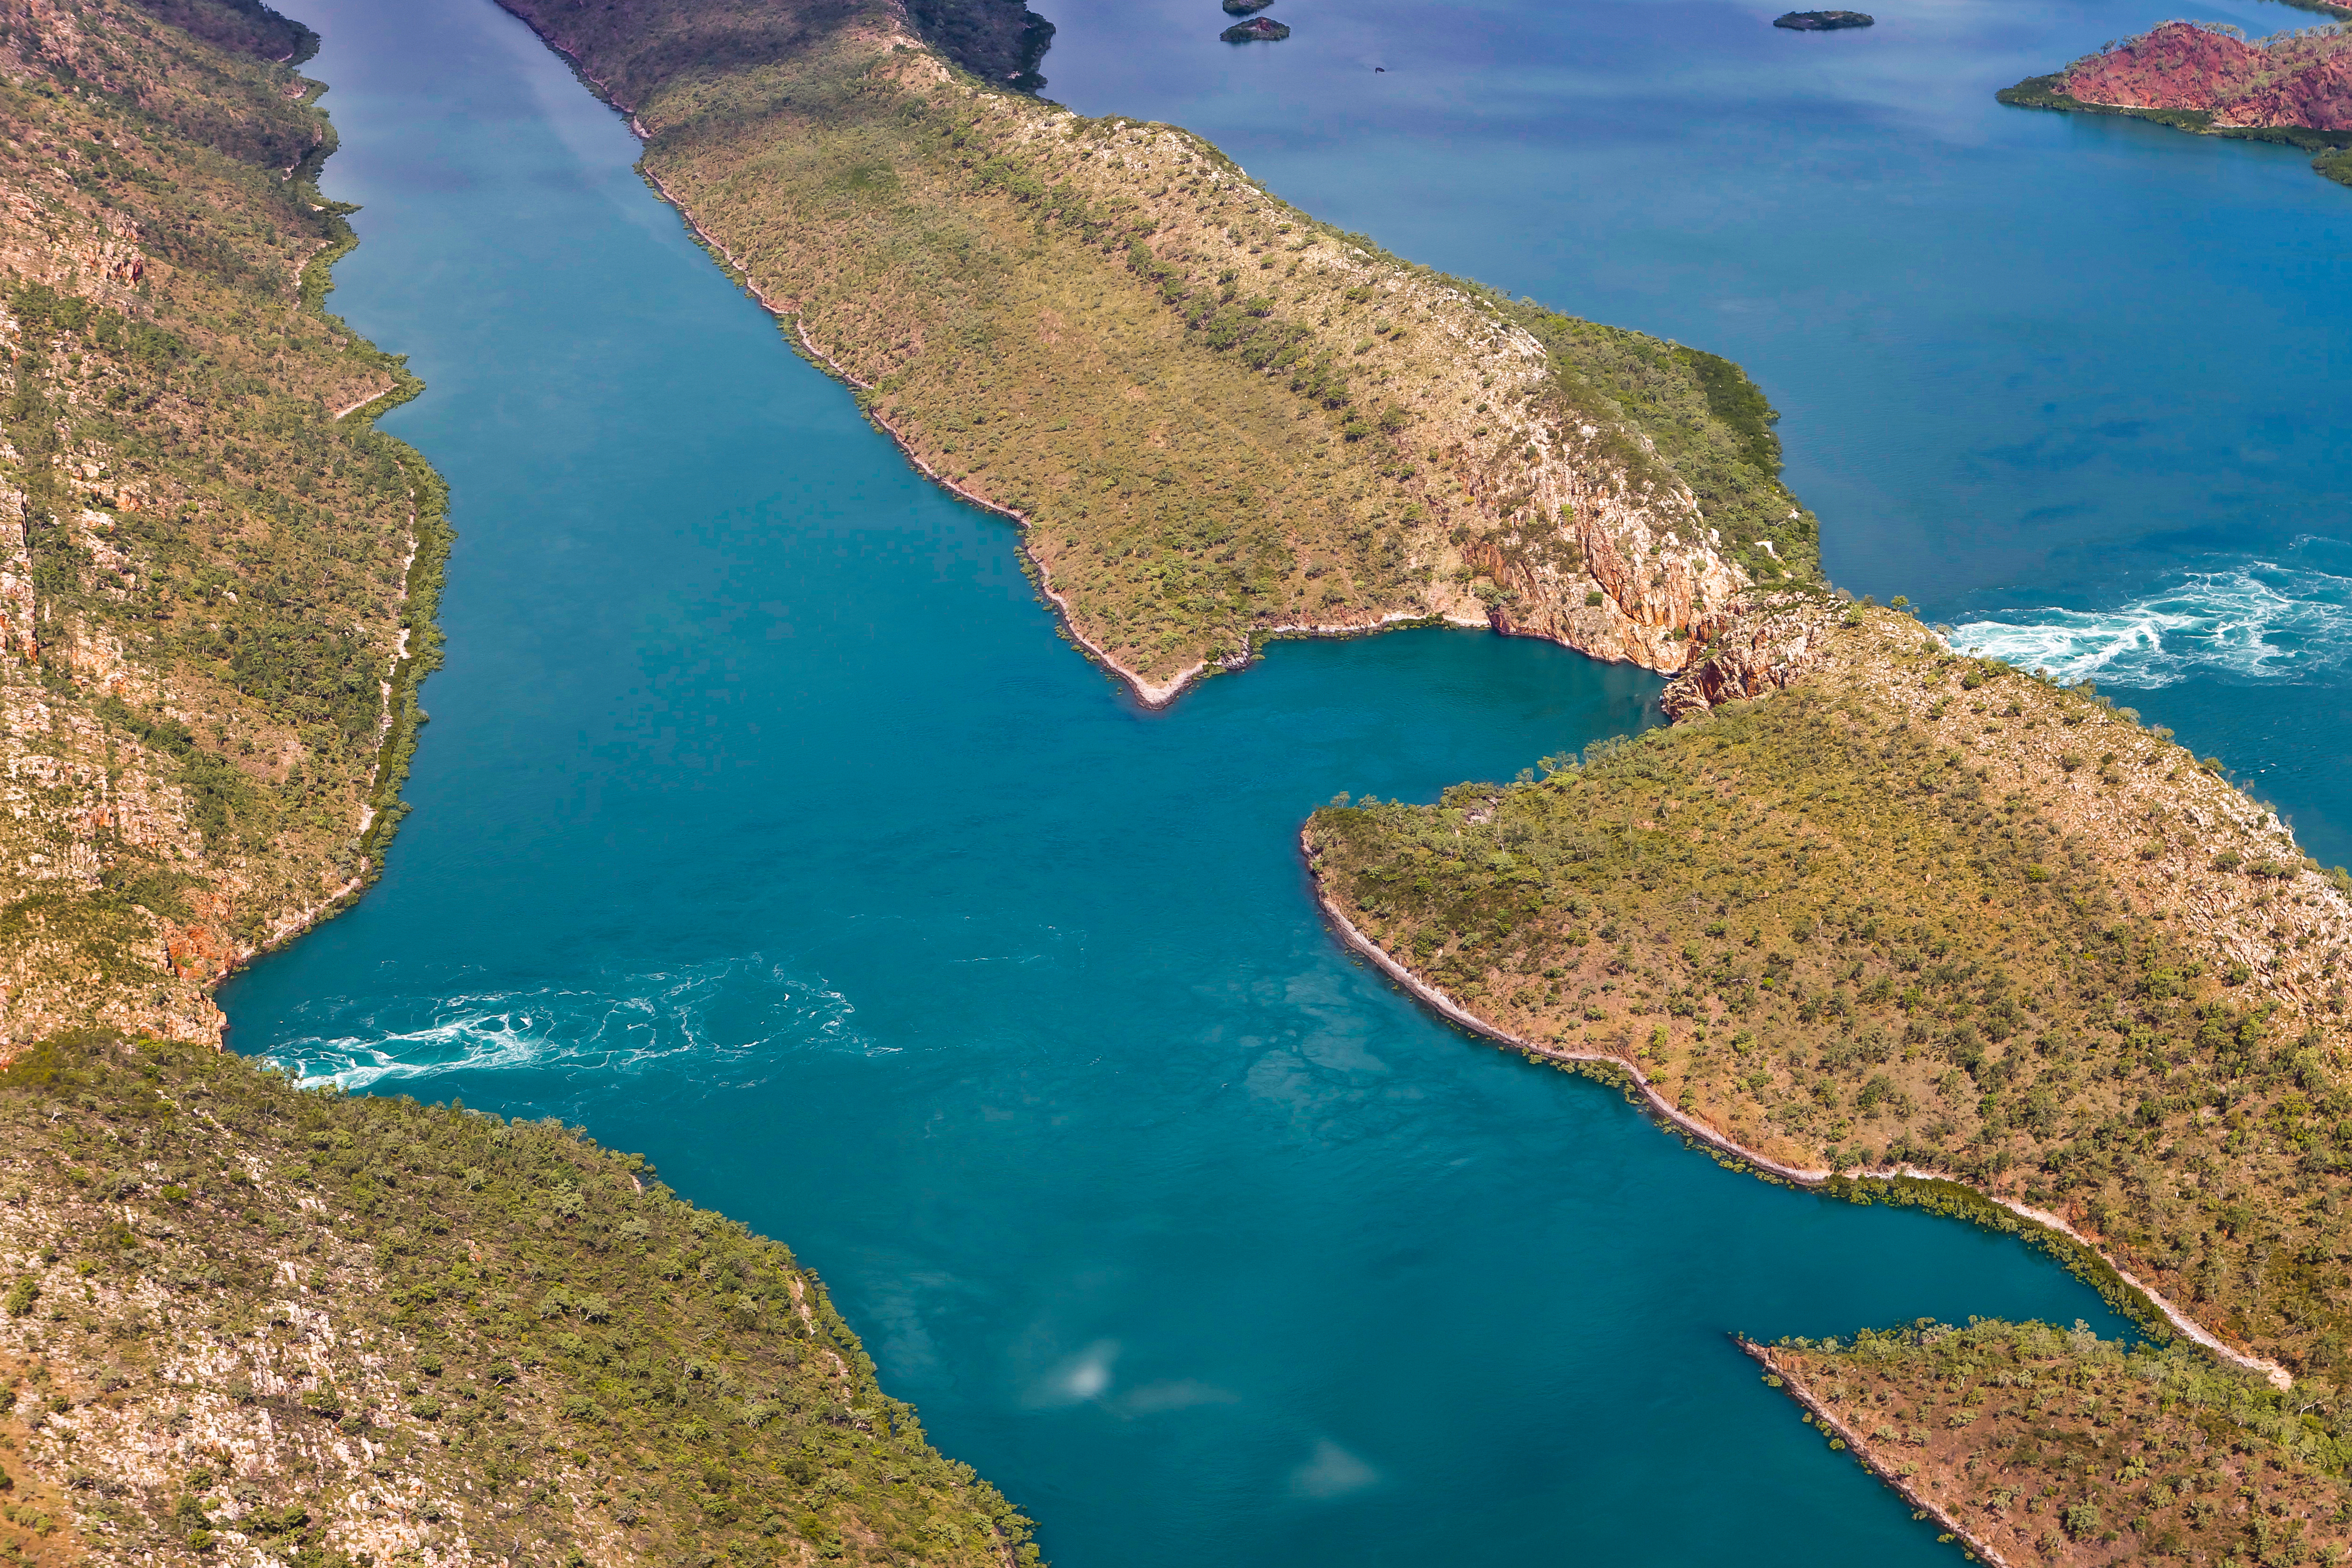 5 Australian Natural Wonders You'll Remember For The Rest Of Your Life